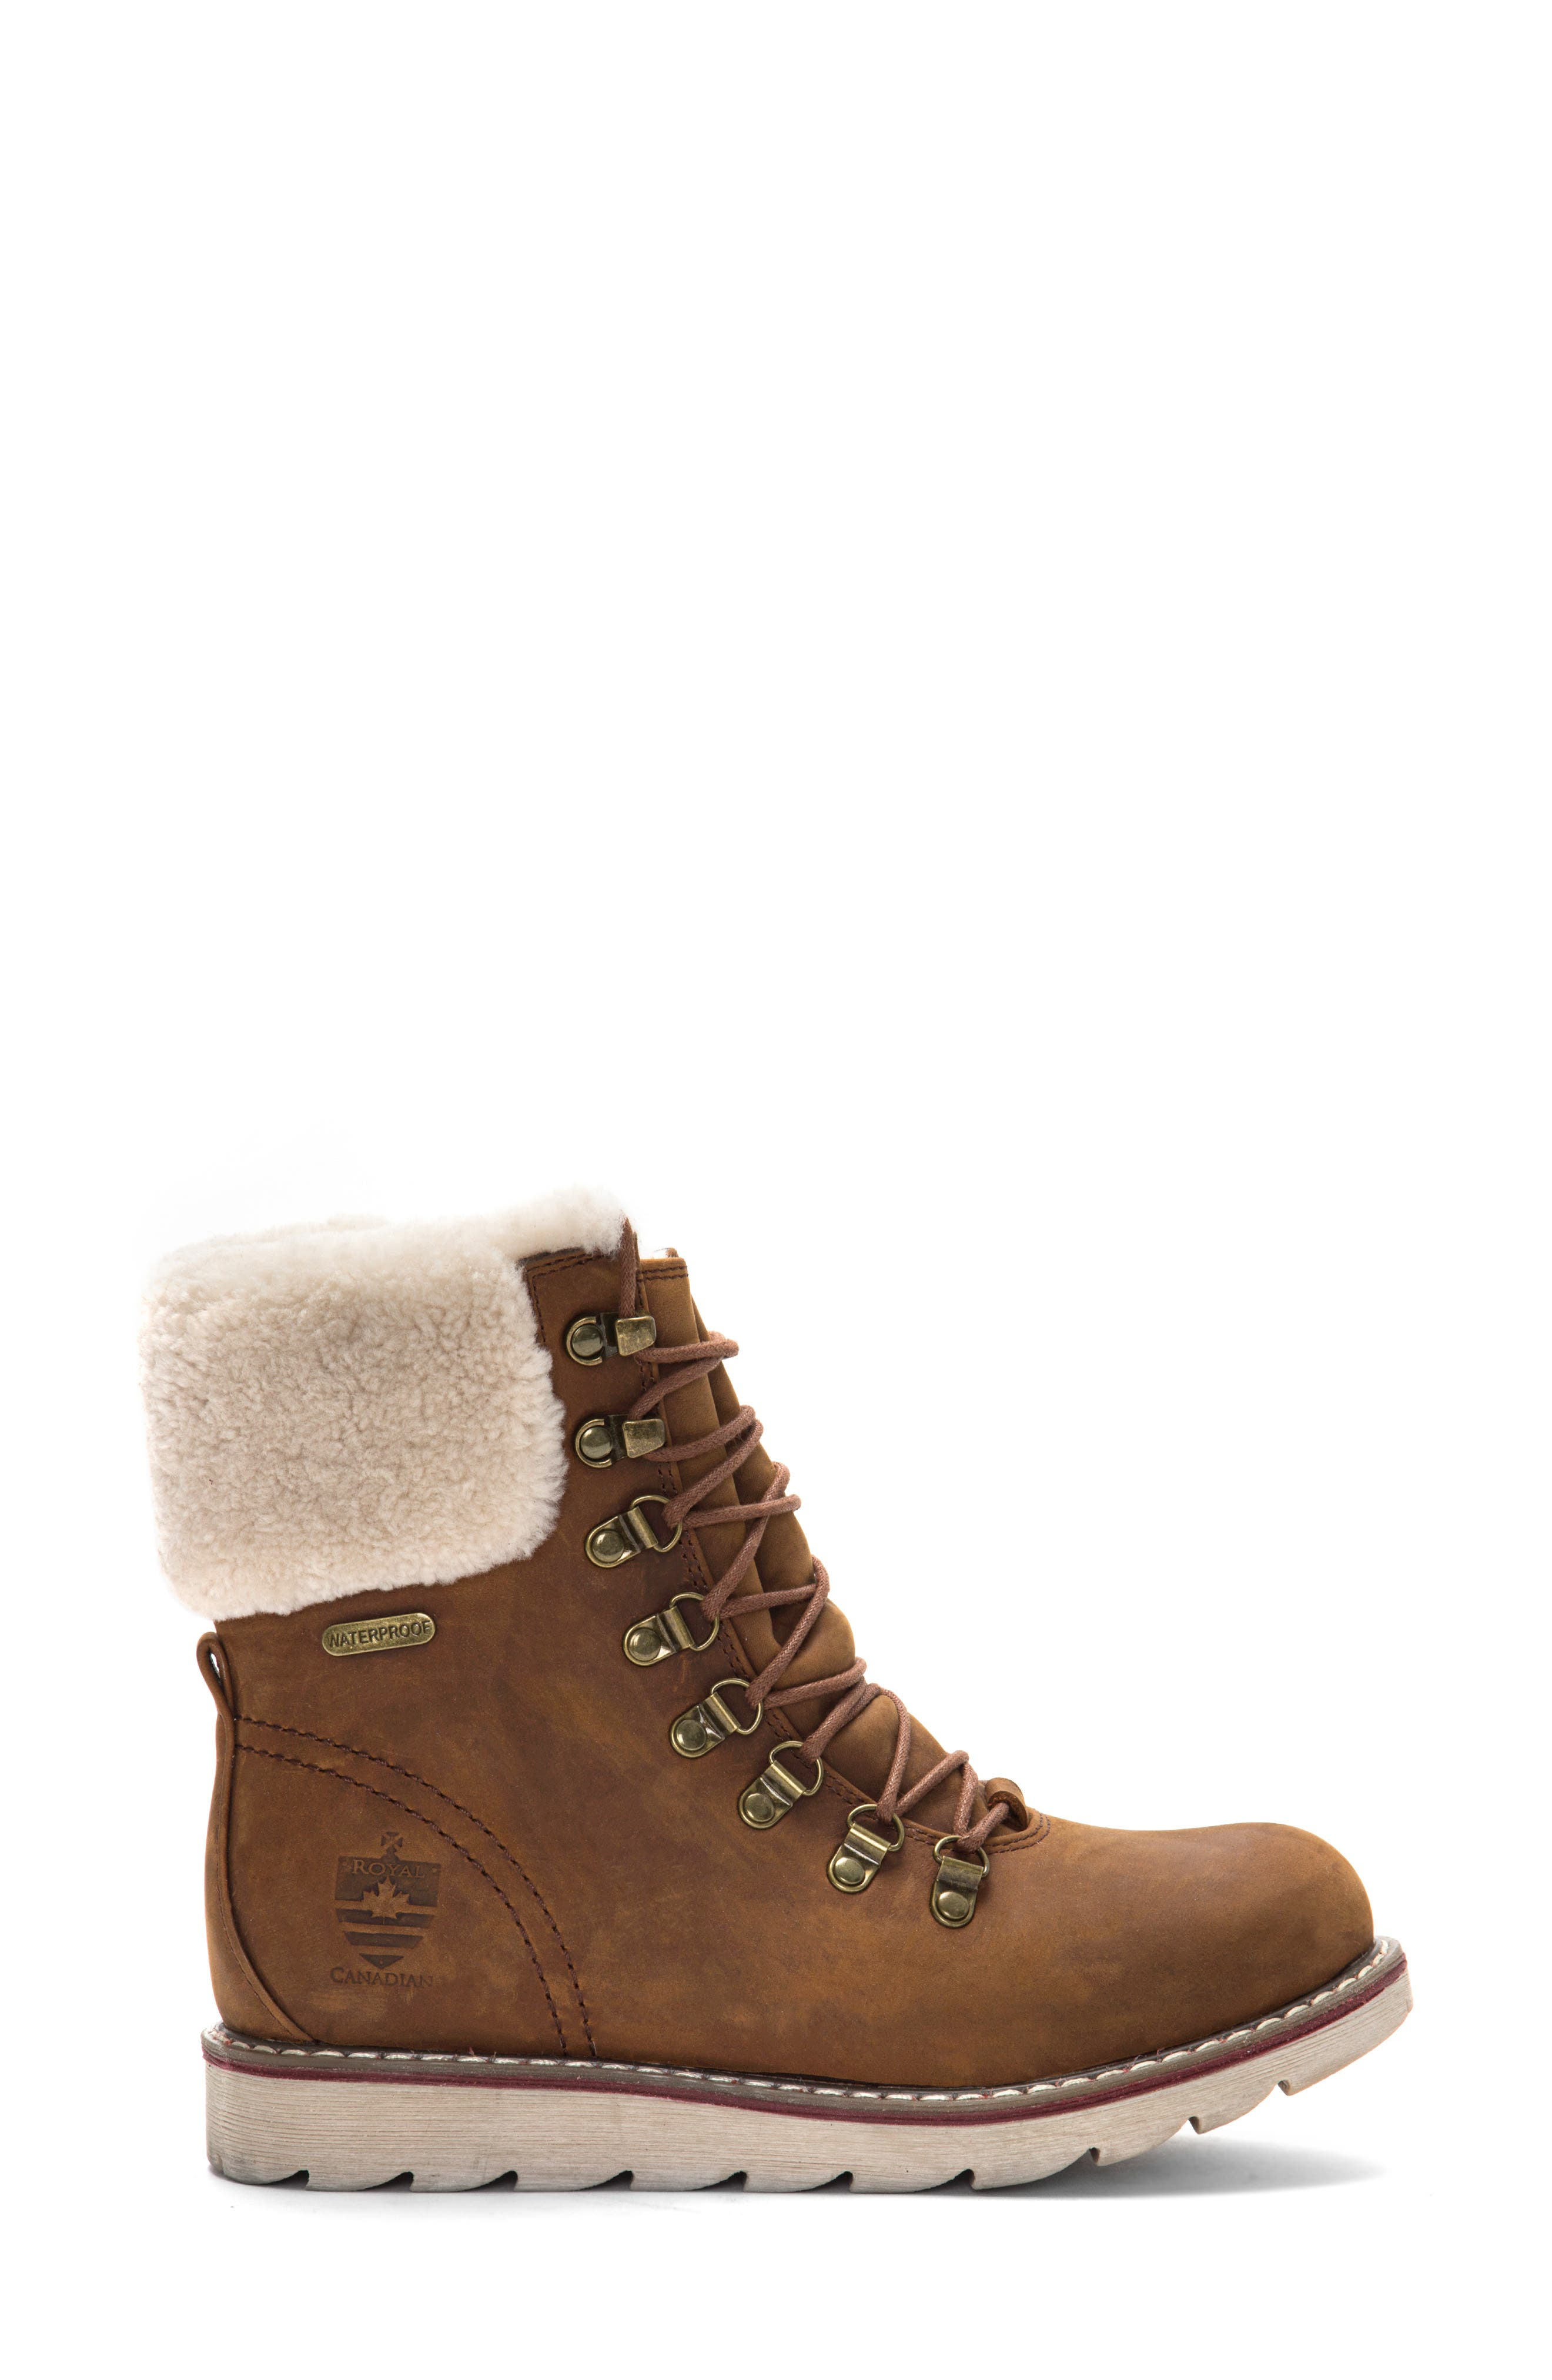 ROYAL CANADIAN, Lethbridge Waterproof Snow Boot with Genuine Shearling Cuff, Alternate thumbnail 2, color, COTTAGE BROWN LEATHER